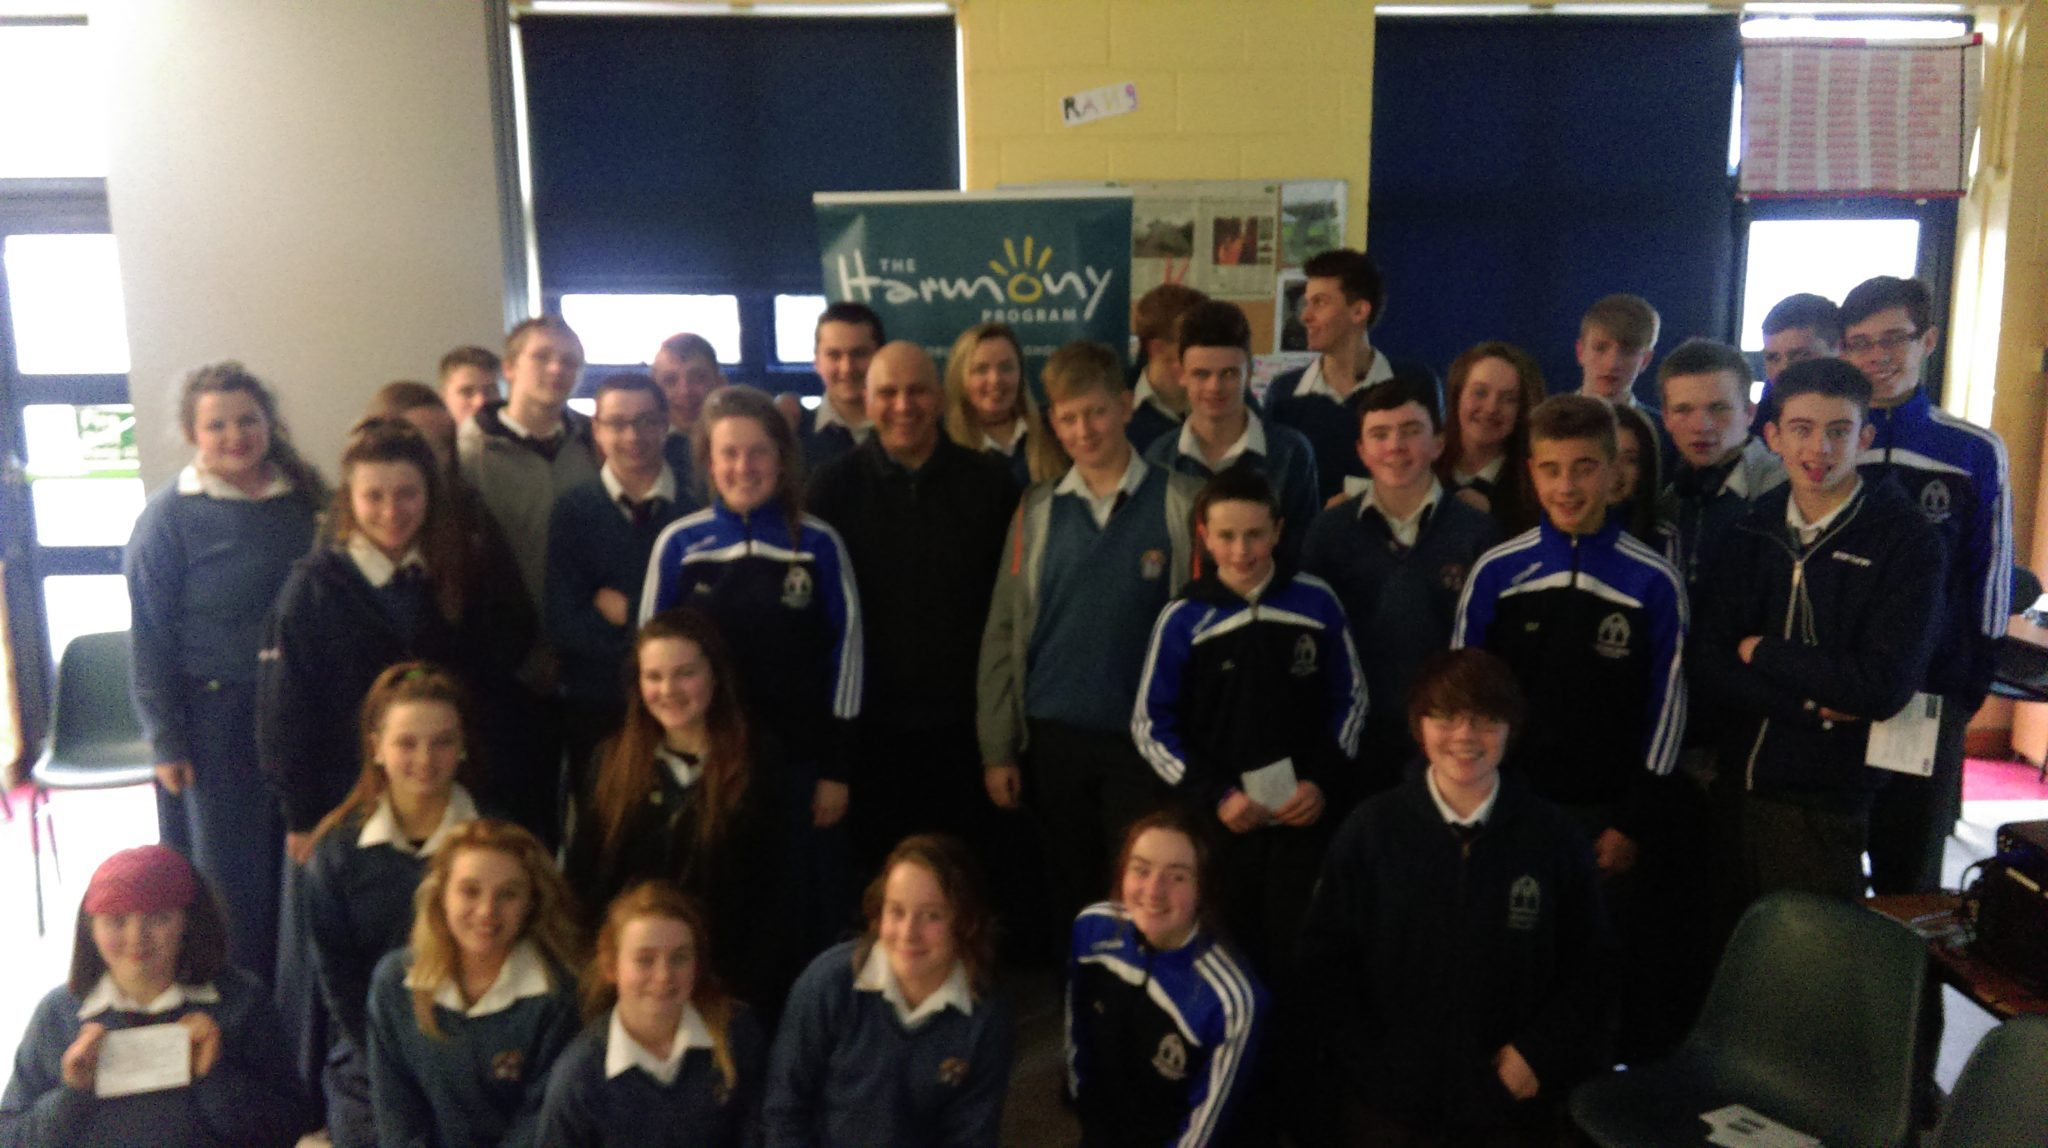 Second Year Desmond College students pictured with Roger Mehta from the Harmony Program